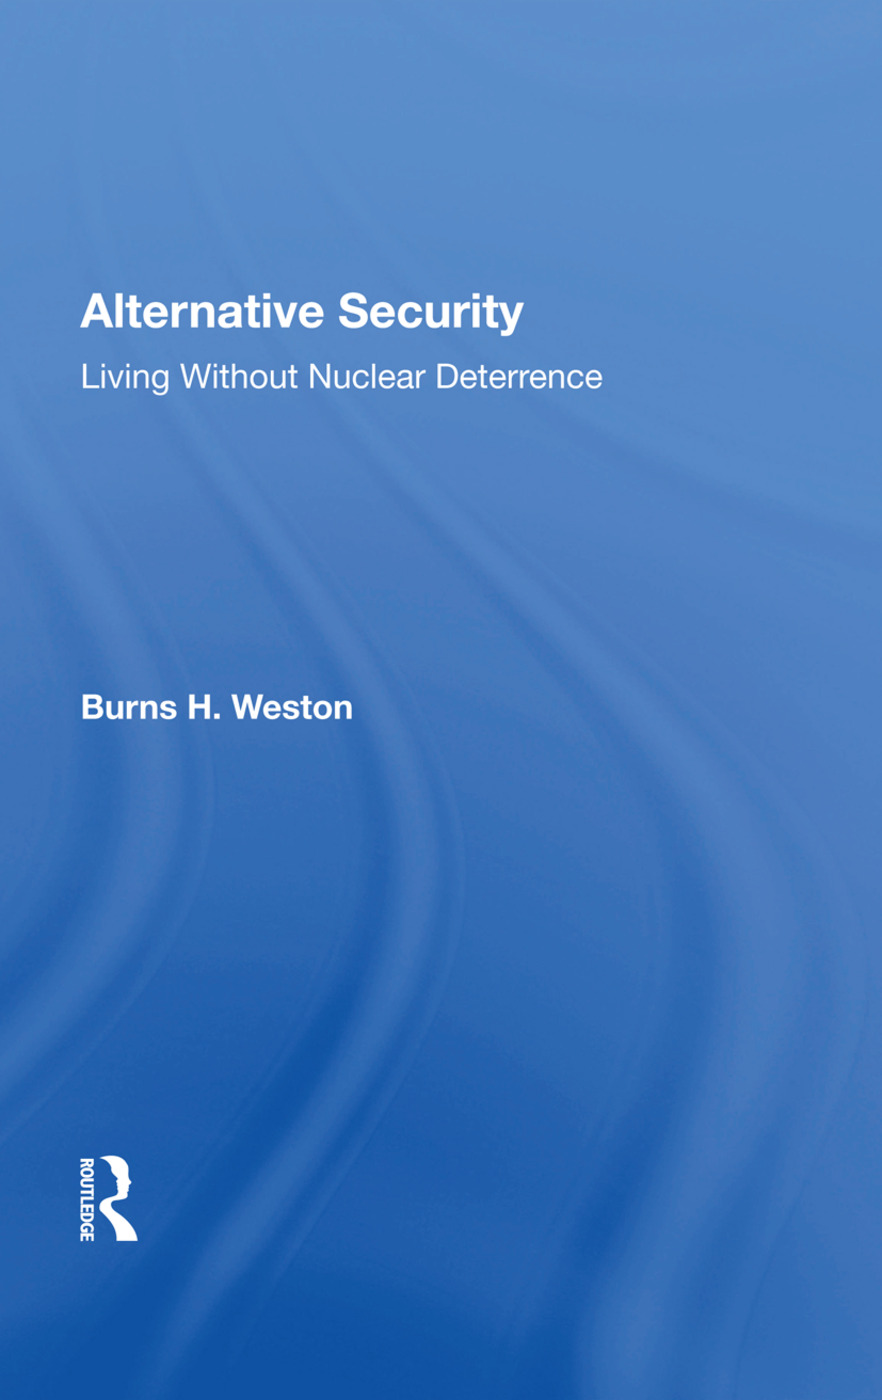 Law and Alternative Security: Toward a Just World Peace